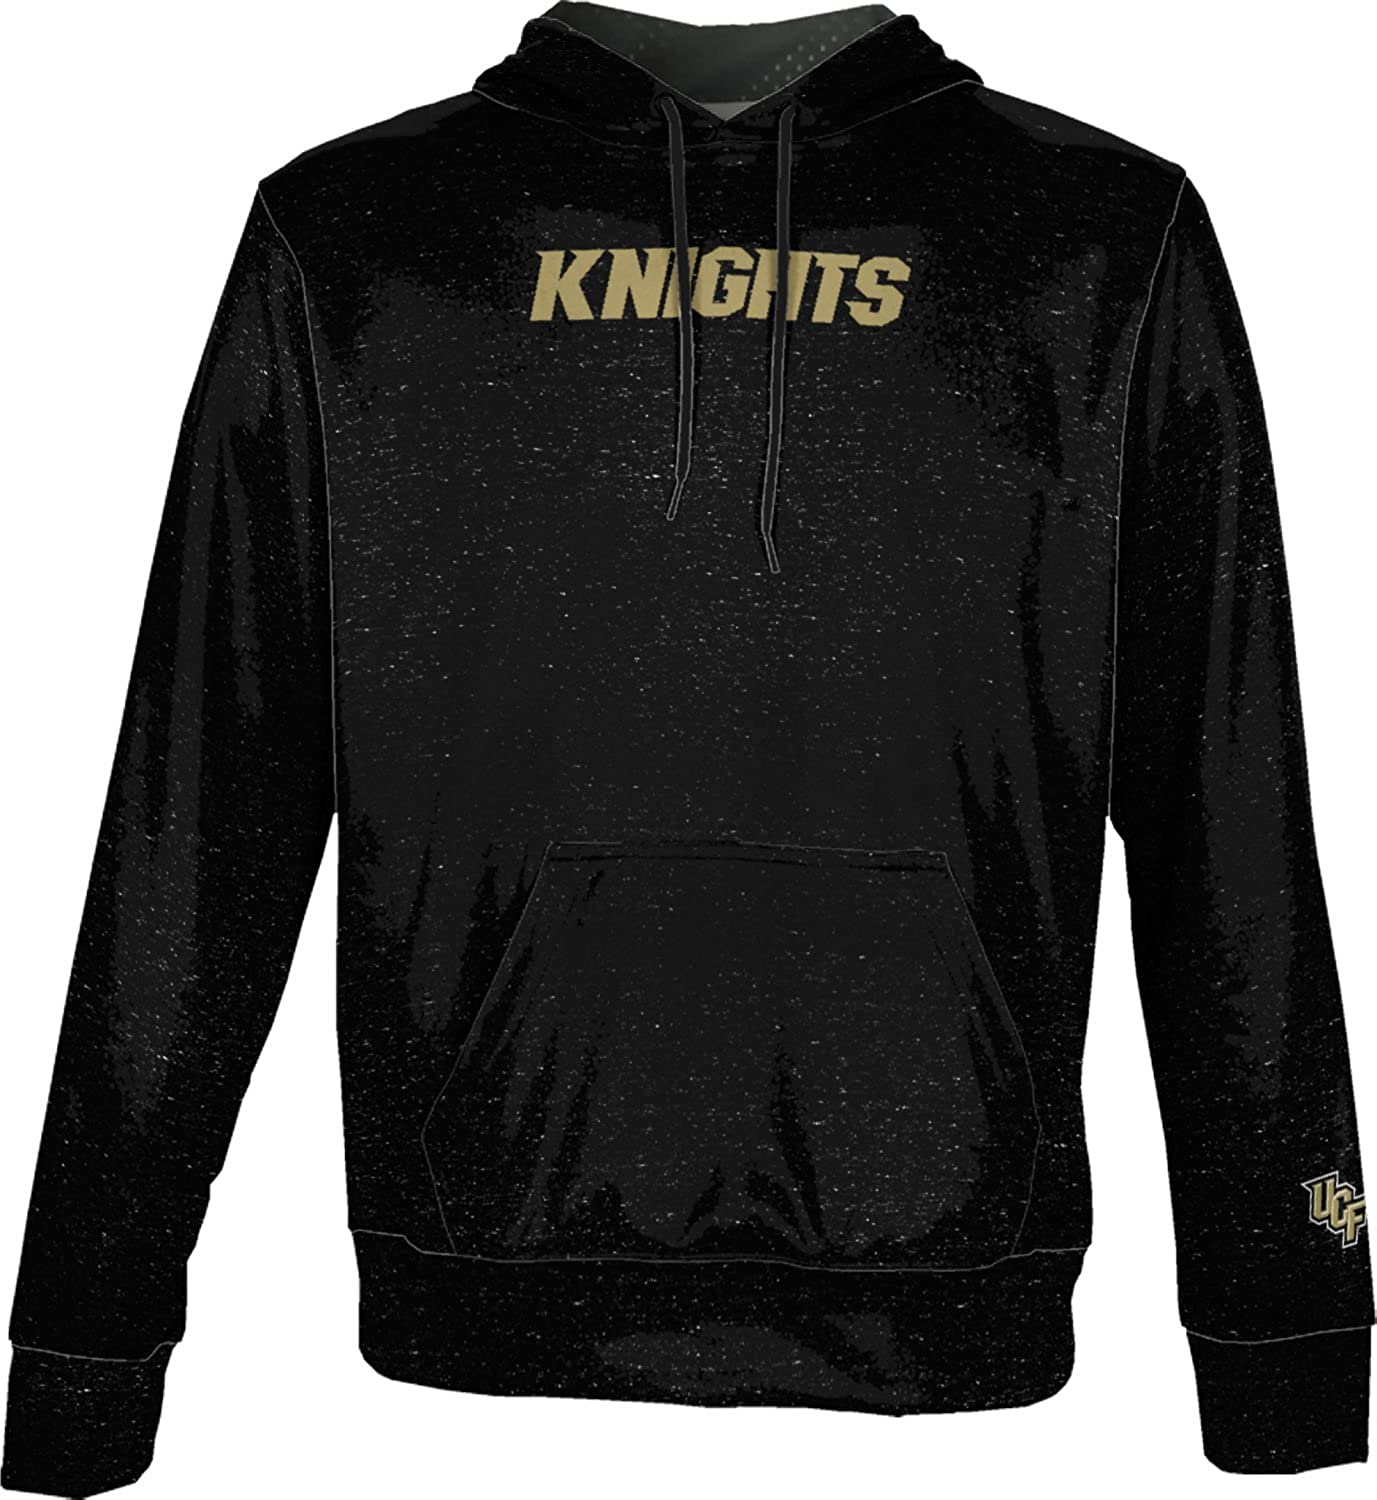 Heathered ProSphere University of Central Florida Boys Hoodie Sweatshirt